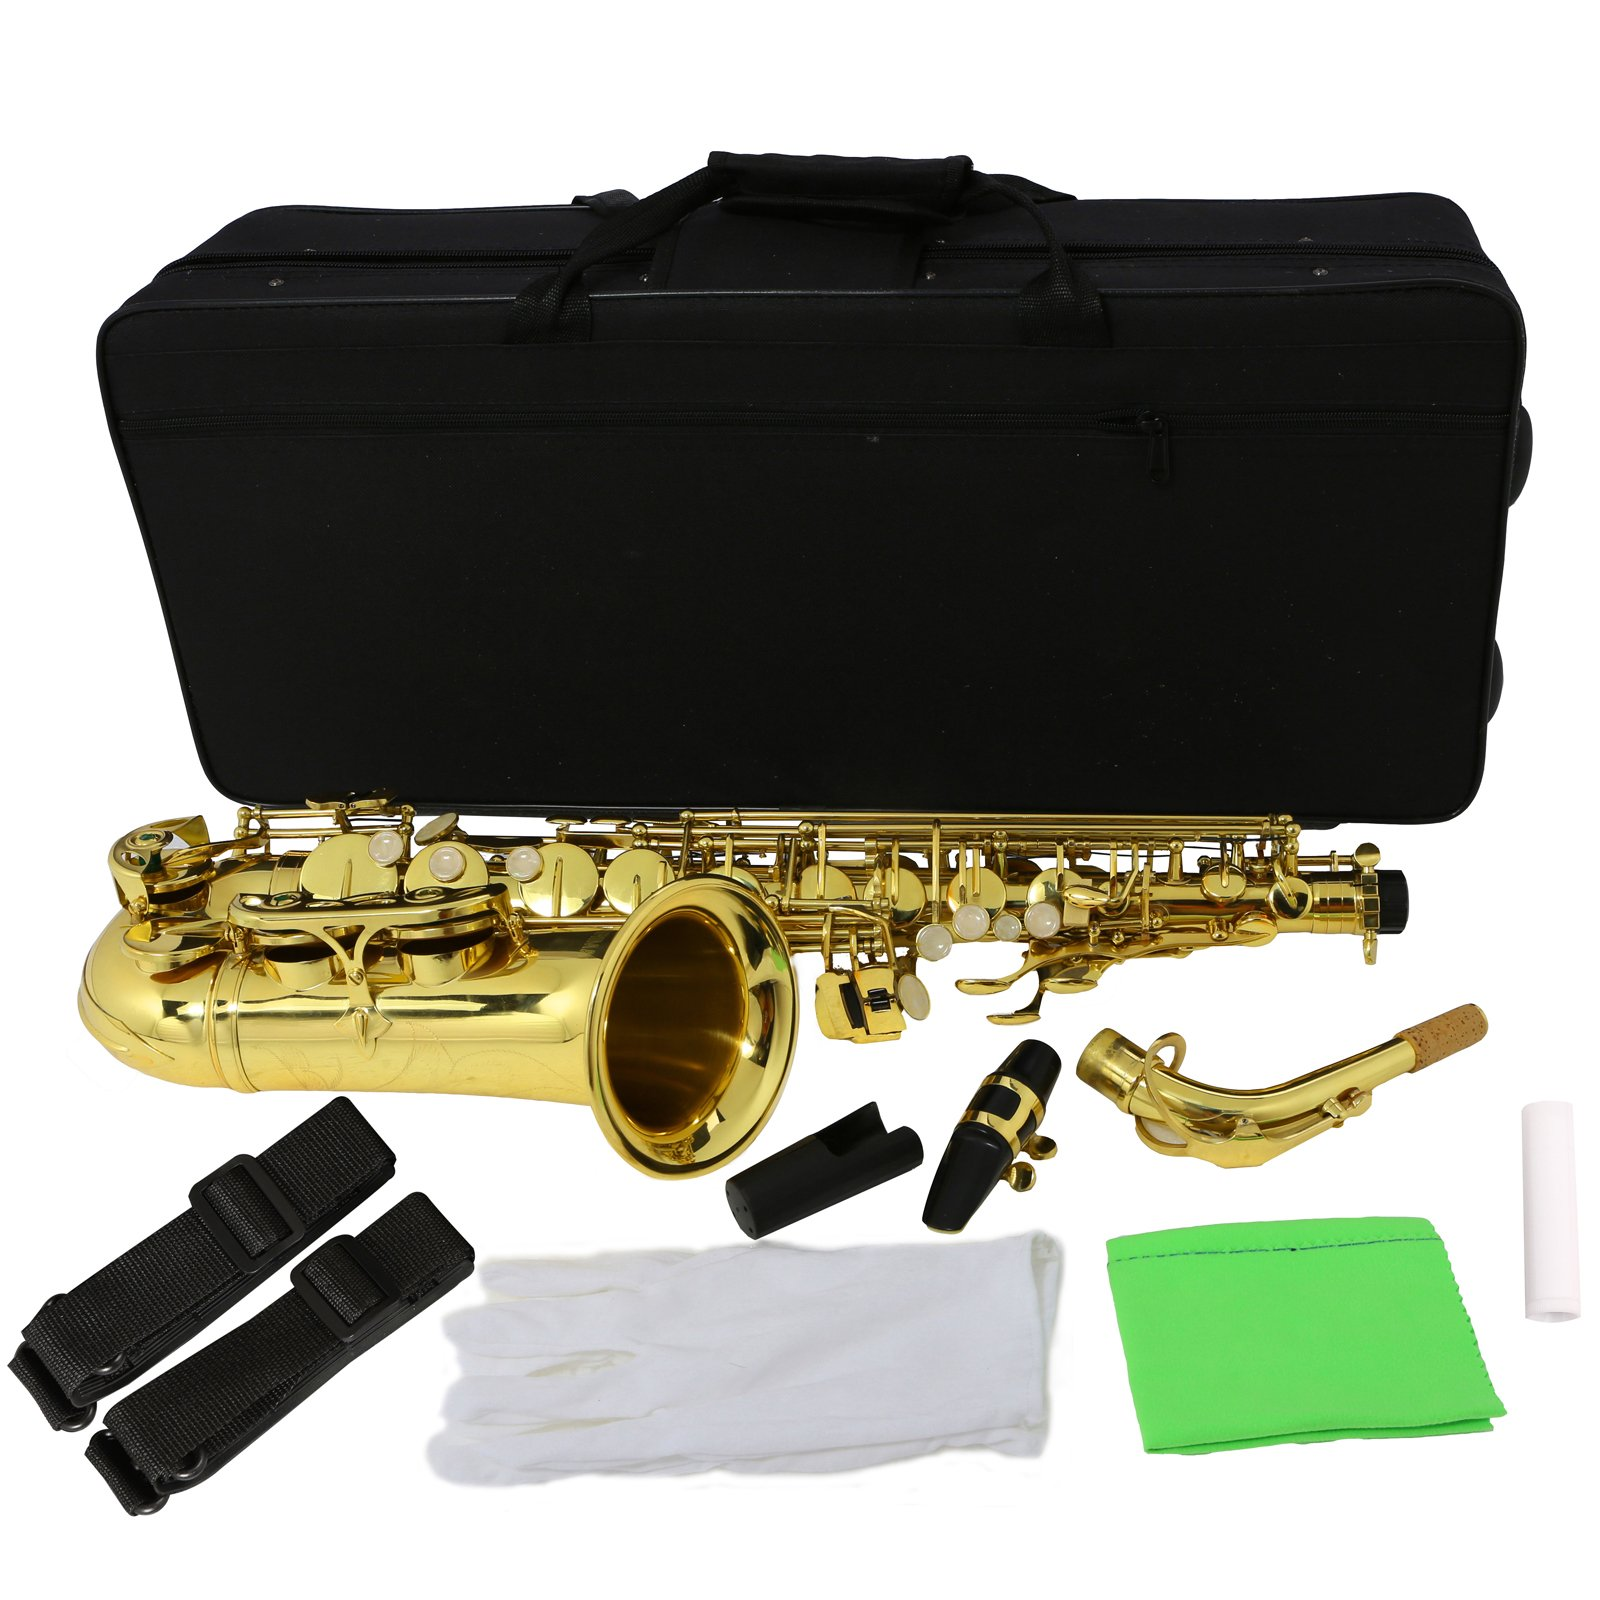 LAGRIMA Professional Alto Eb SAX Saxophone Gold Laquer Finish, Alto Saxophone with White Gloves, Cleaning Cloth, Cleaning Swab, Case, Mouthpiece, Neck Strap for Beginner Adult by LAGRIMA